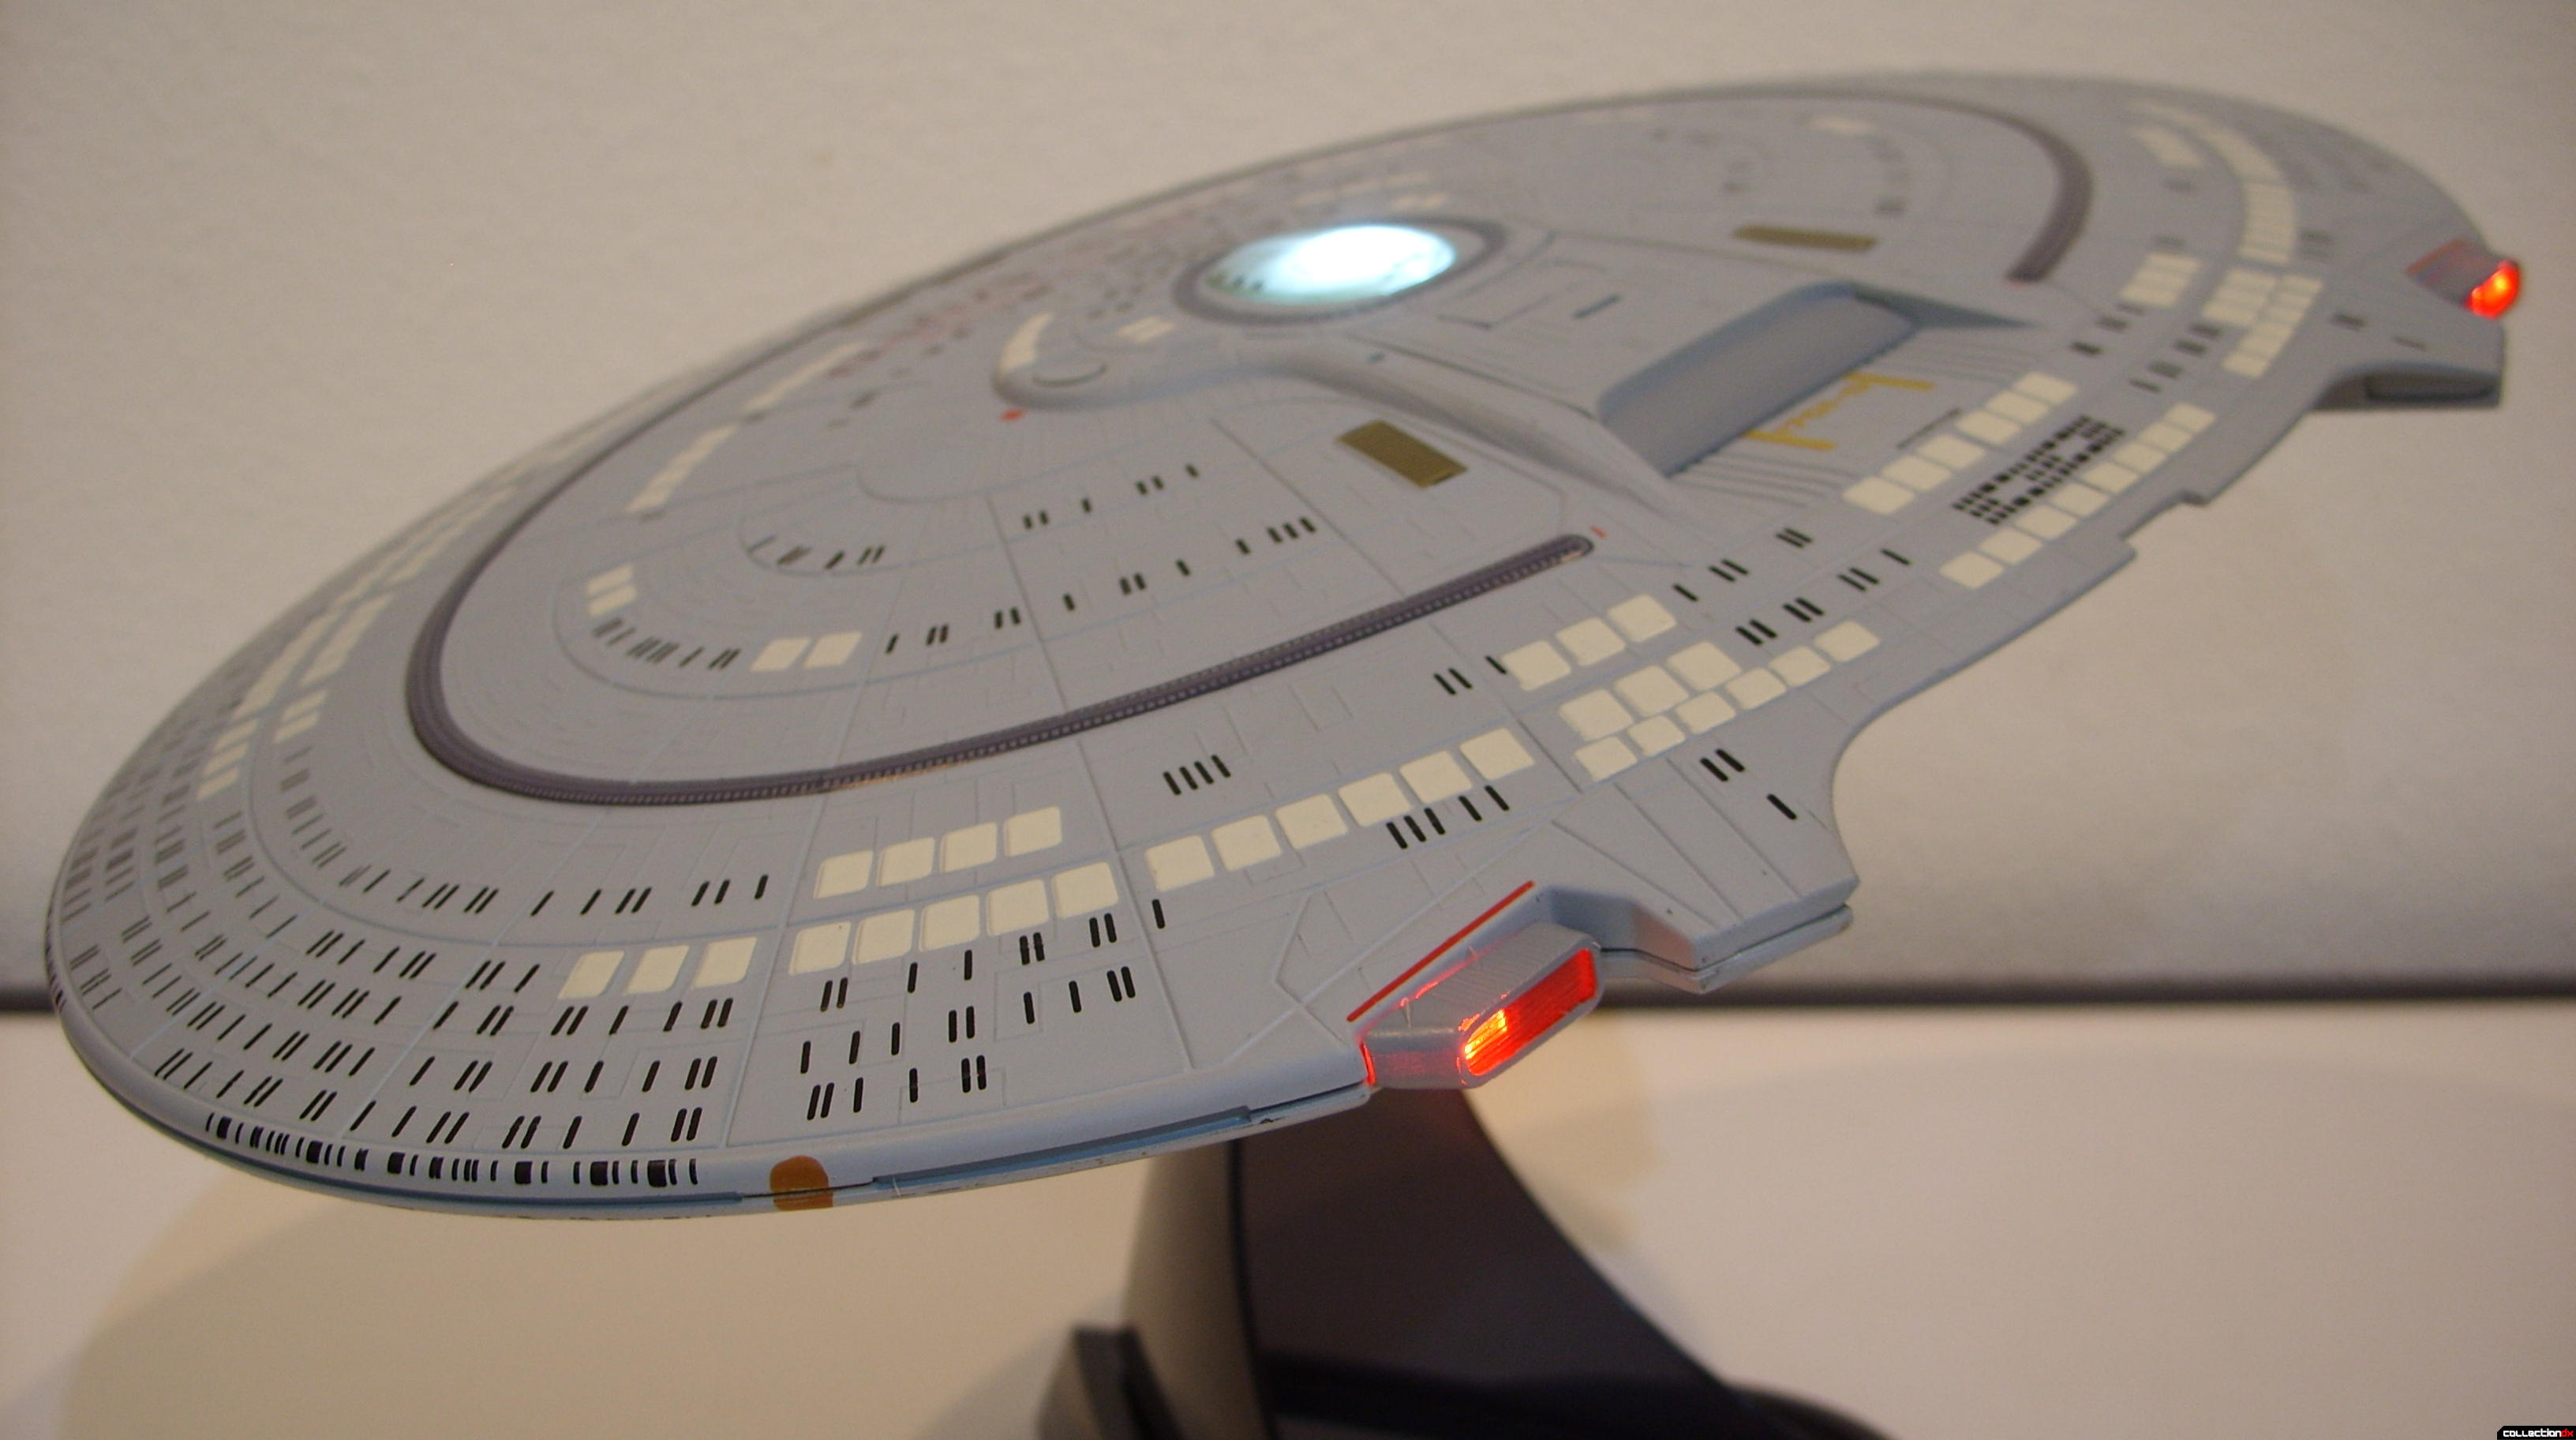 Starship Legends U.S.S. Enterprise-D (Saucer Section dramatic angle, lit)